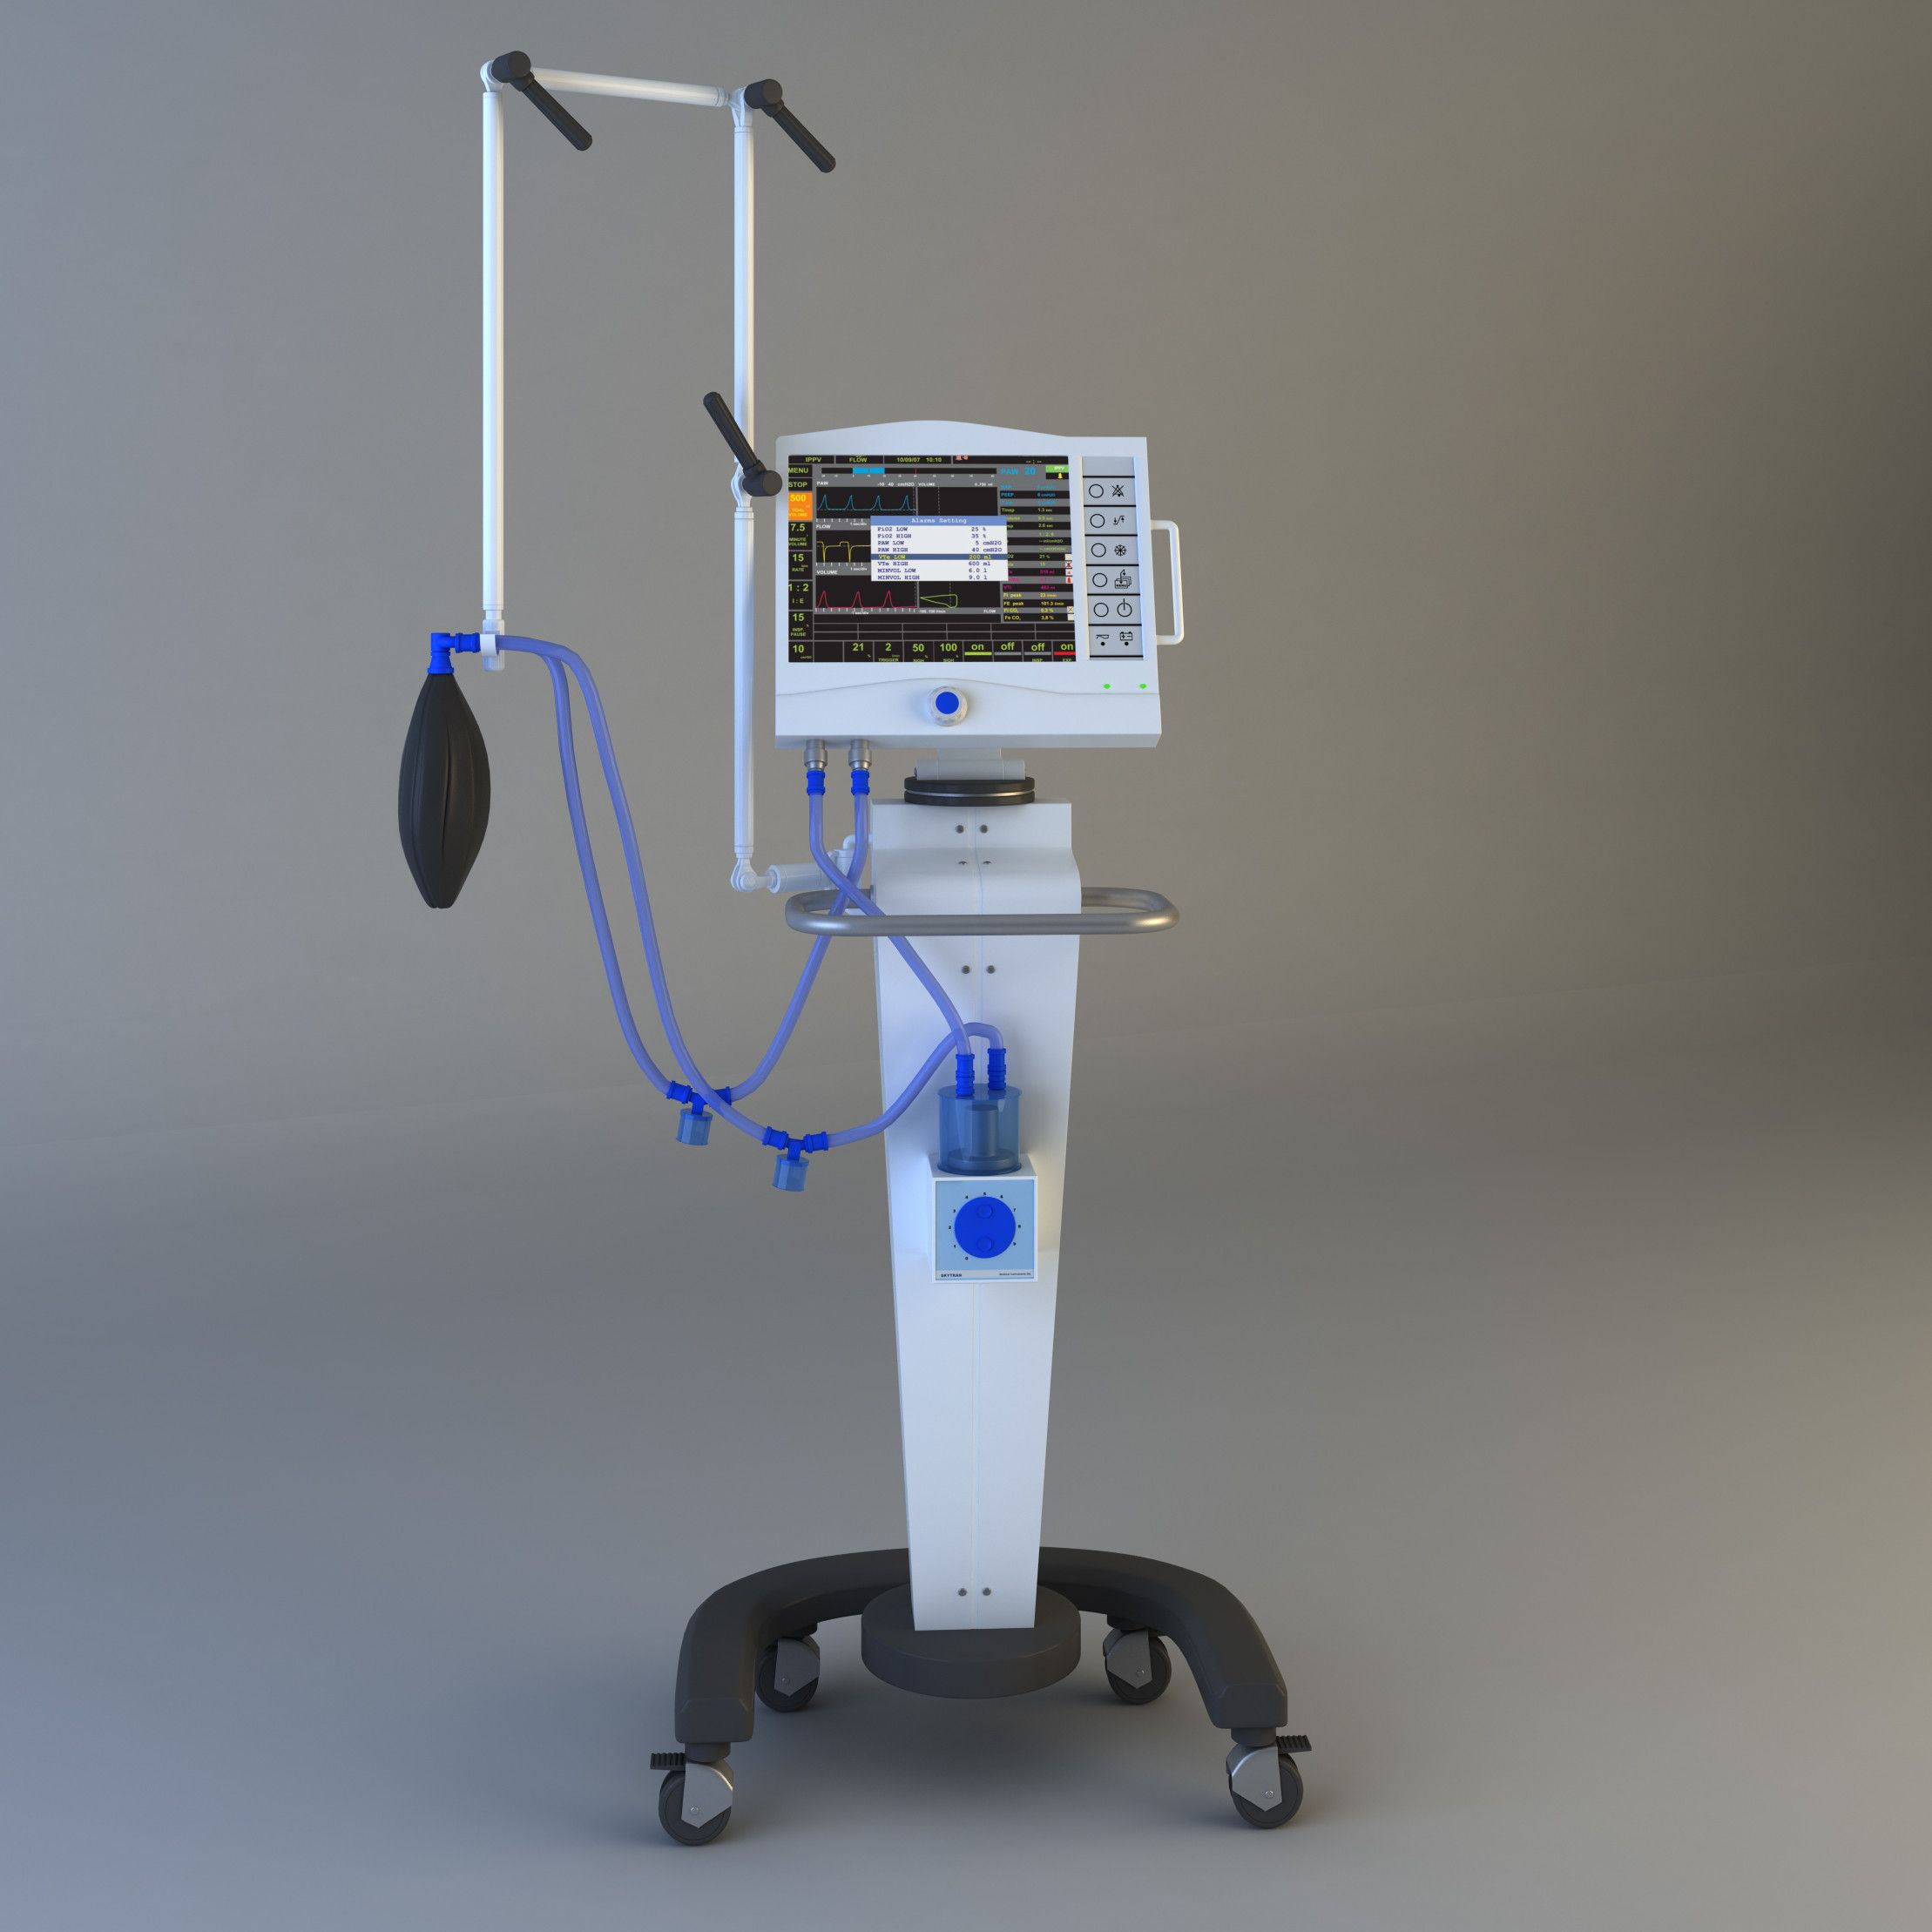 medical ventilator : used to mechanically move breathable air in and